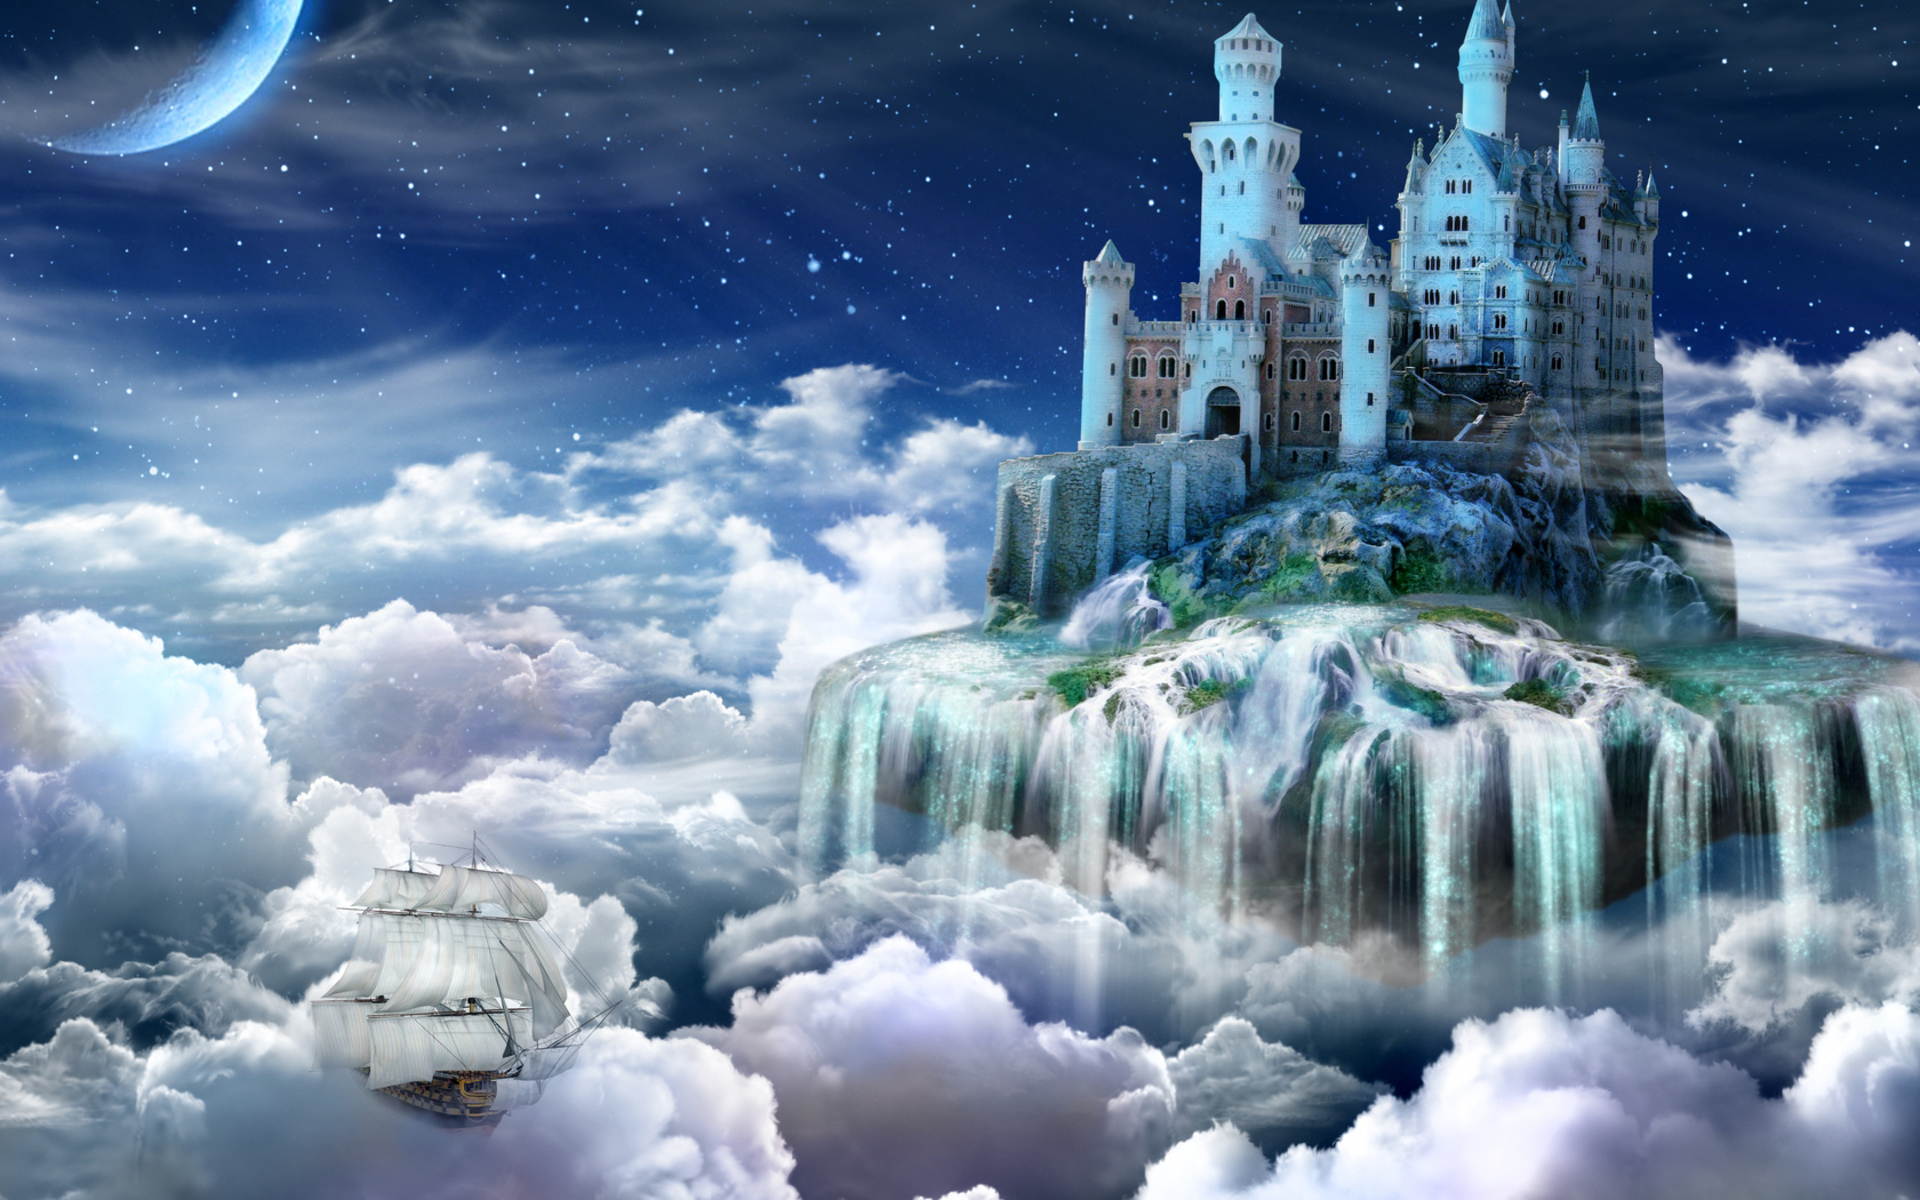 Dream Fantasy Wallpaper Fantasy Dream Art cg Digital